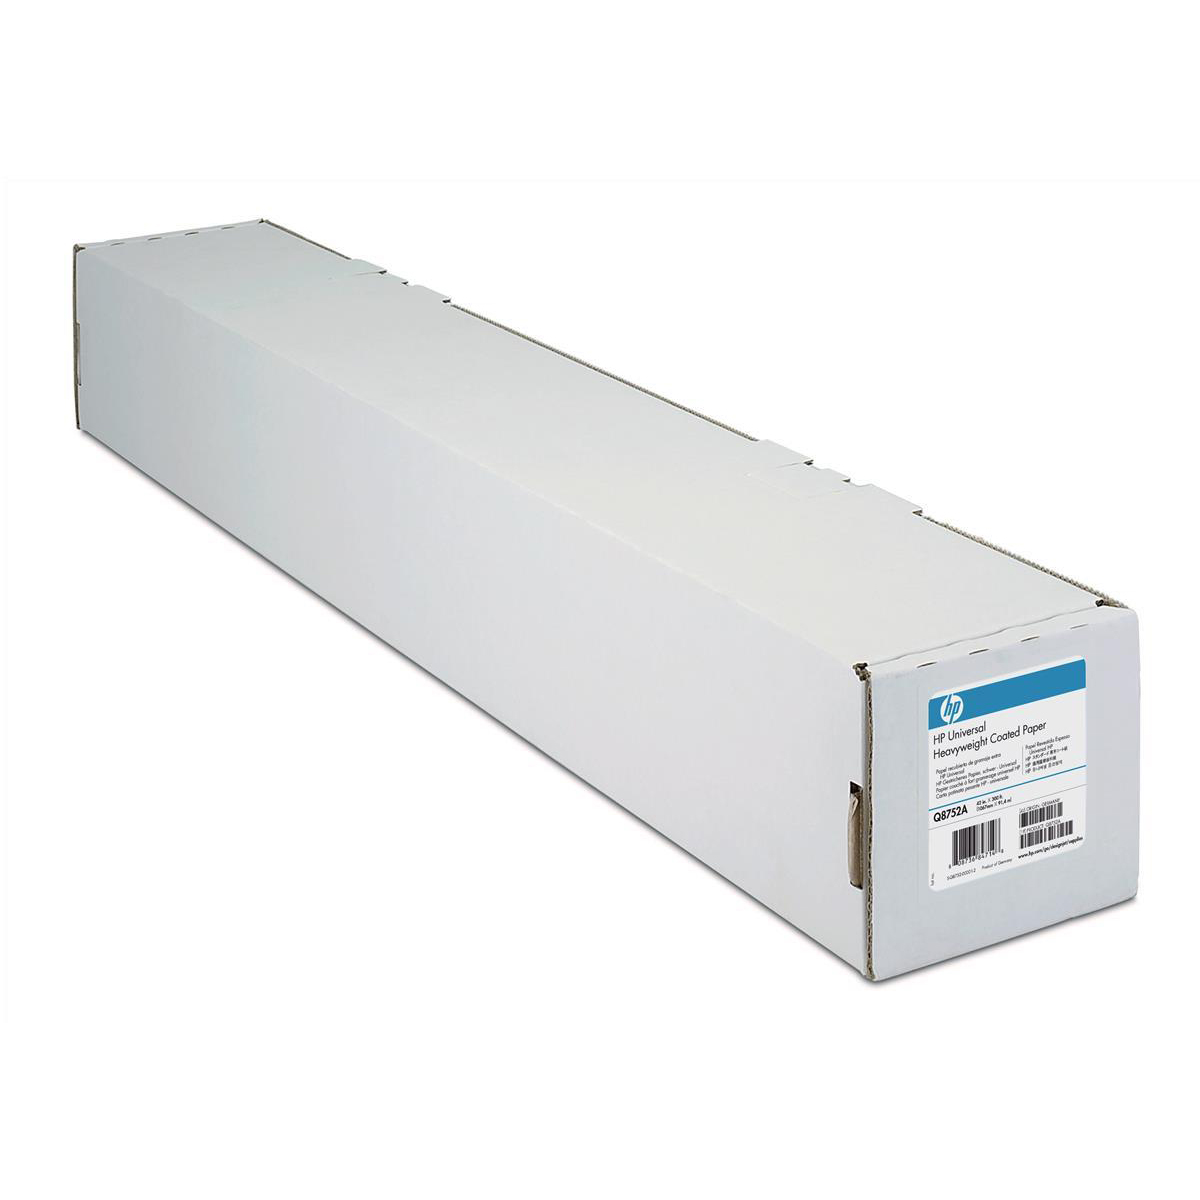 Other Sizes Hewlett Packard HP DesignJet Coated Paper 90gsm 24 inch Roll 610mmx45.7m Ref C6019B